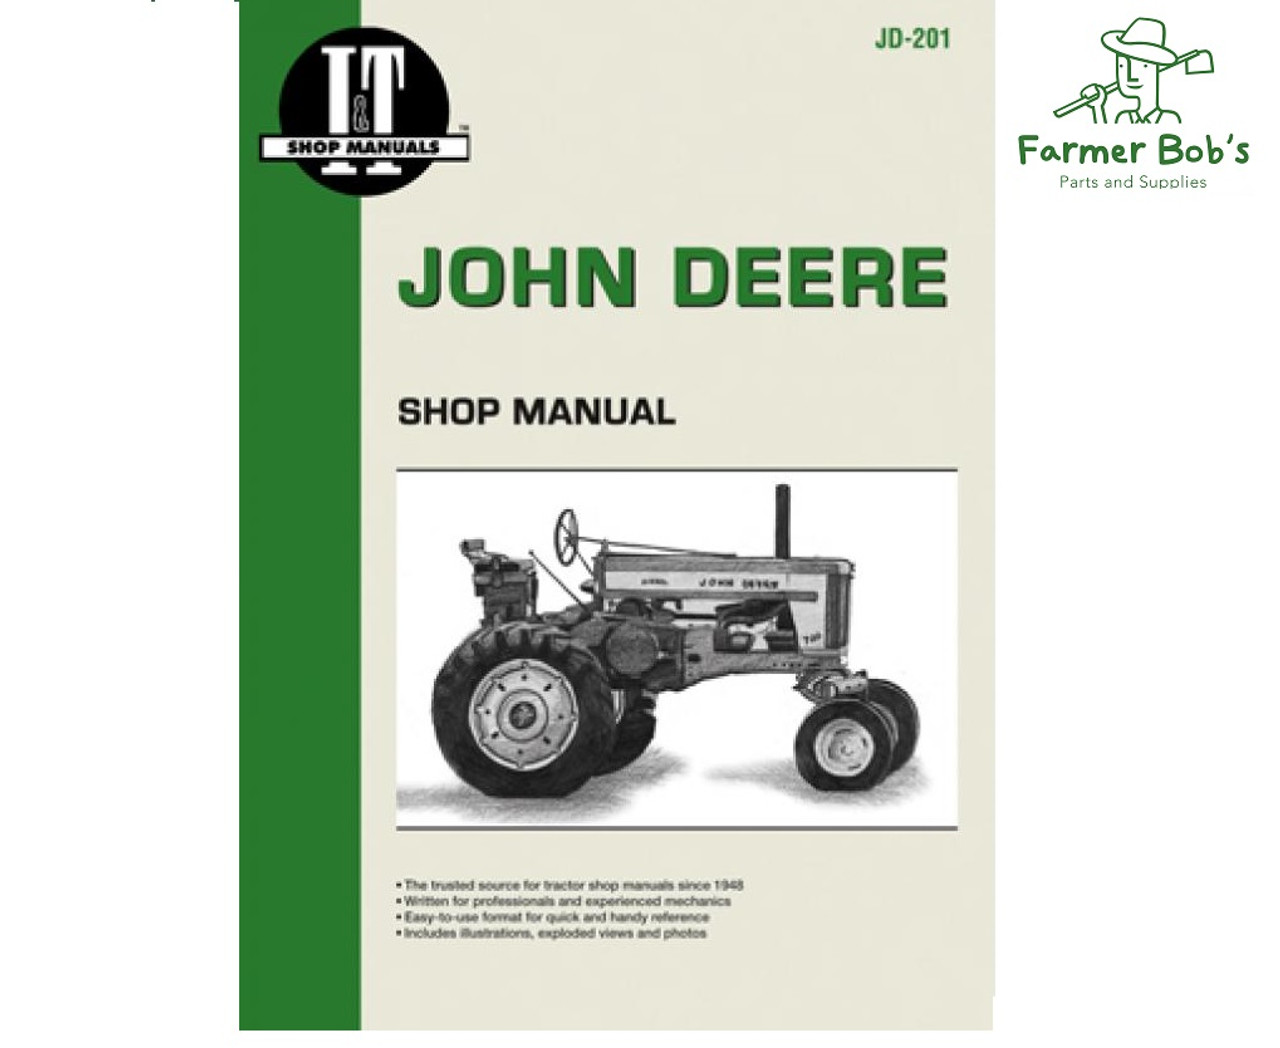 jd201 - i&t shop manuals john deere 720 diesel, 730 diesel; series 40, 320,  330, 420, 430, 440; models 80, 820, 830(two-cylinder); series 820, 830  (three-cylinder); models 435d diesel and 440id diesel manual. - farmer bobs  parts and supplies llc  farmer bobs parts